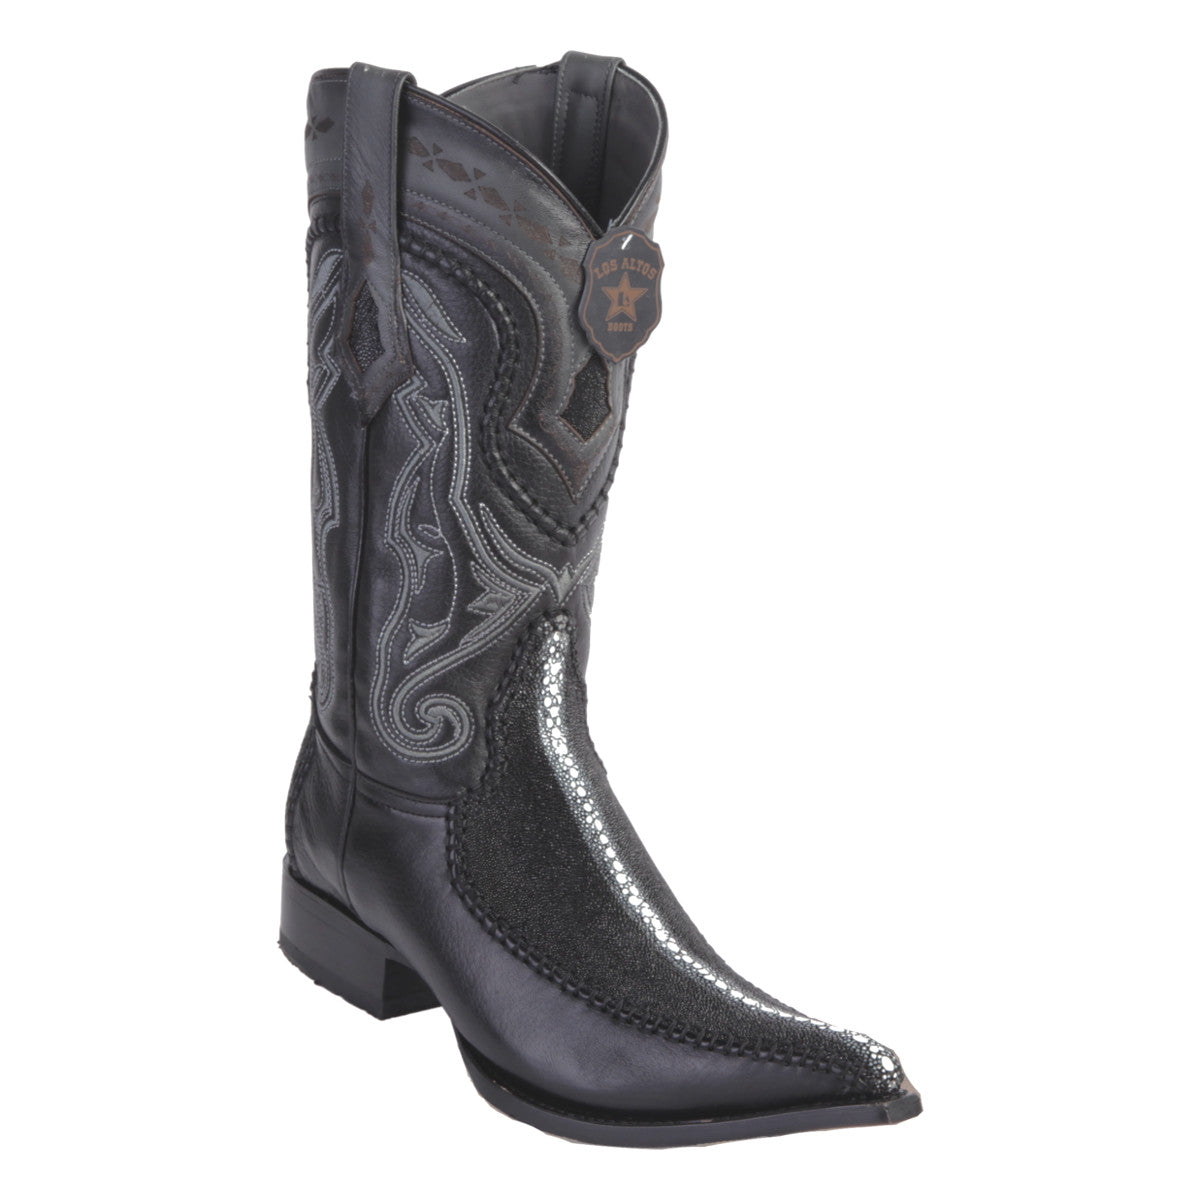 Los Altos Boots 3x Toe Stitched Stingray Rowstone w/Deer